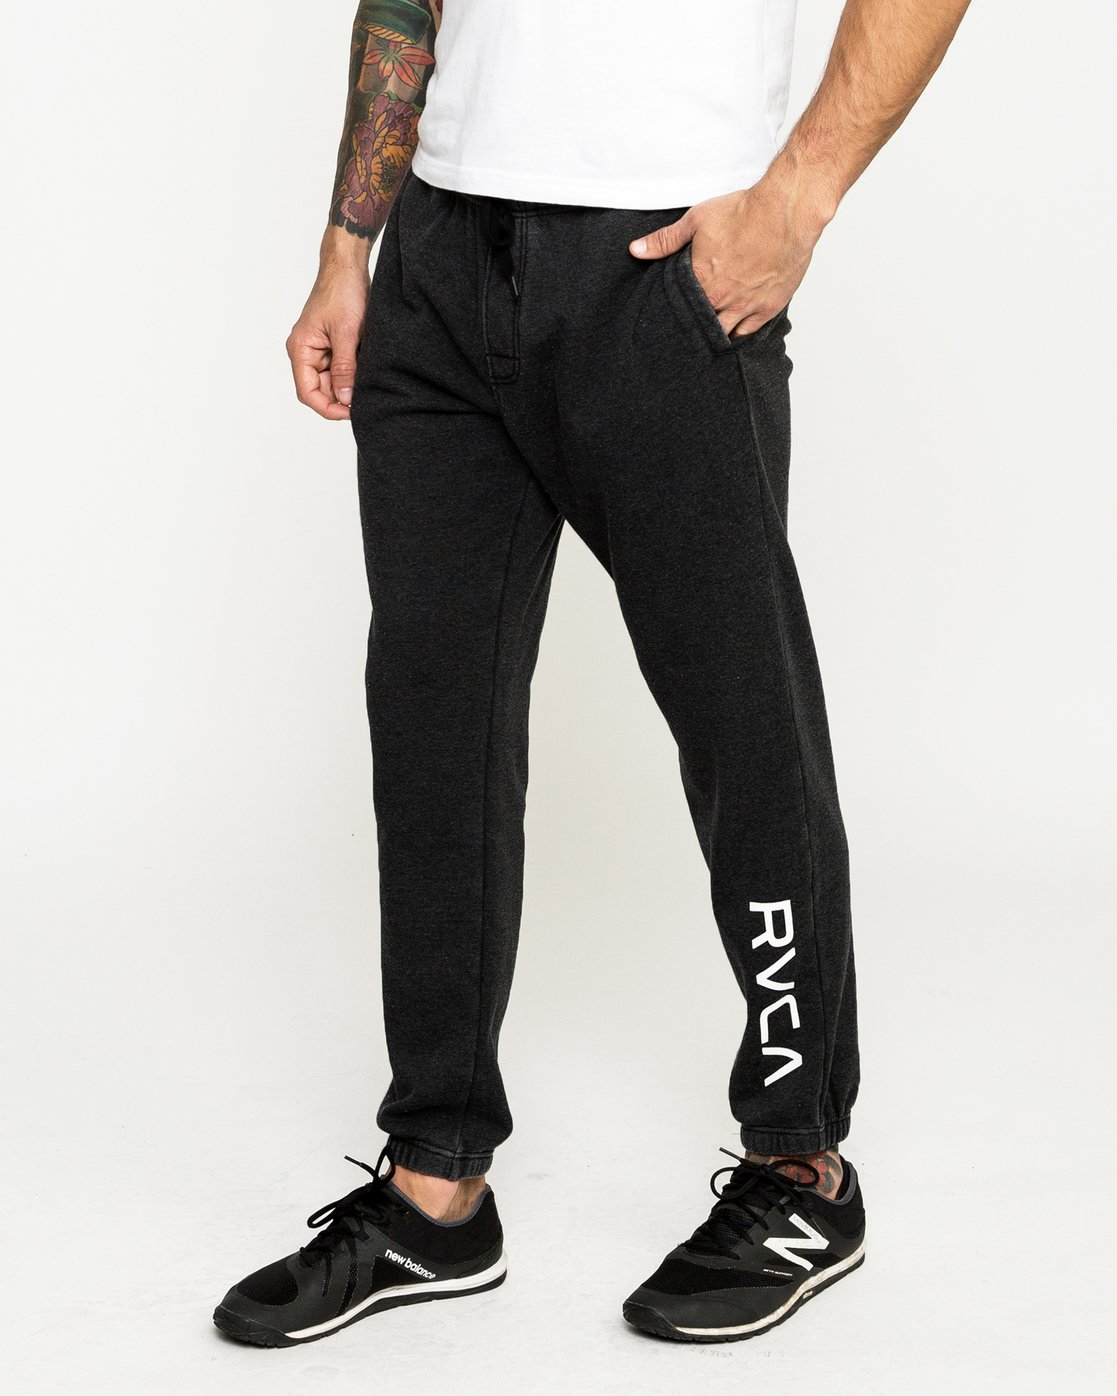 0 Cage Sweatpantshort Sleeve Pants Black R393276 RVCA